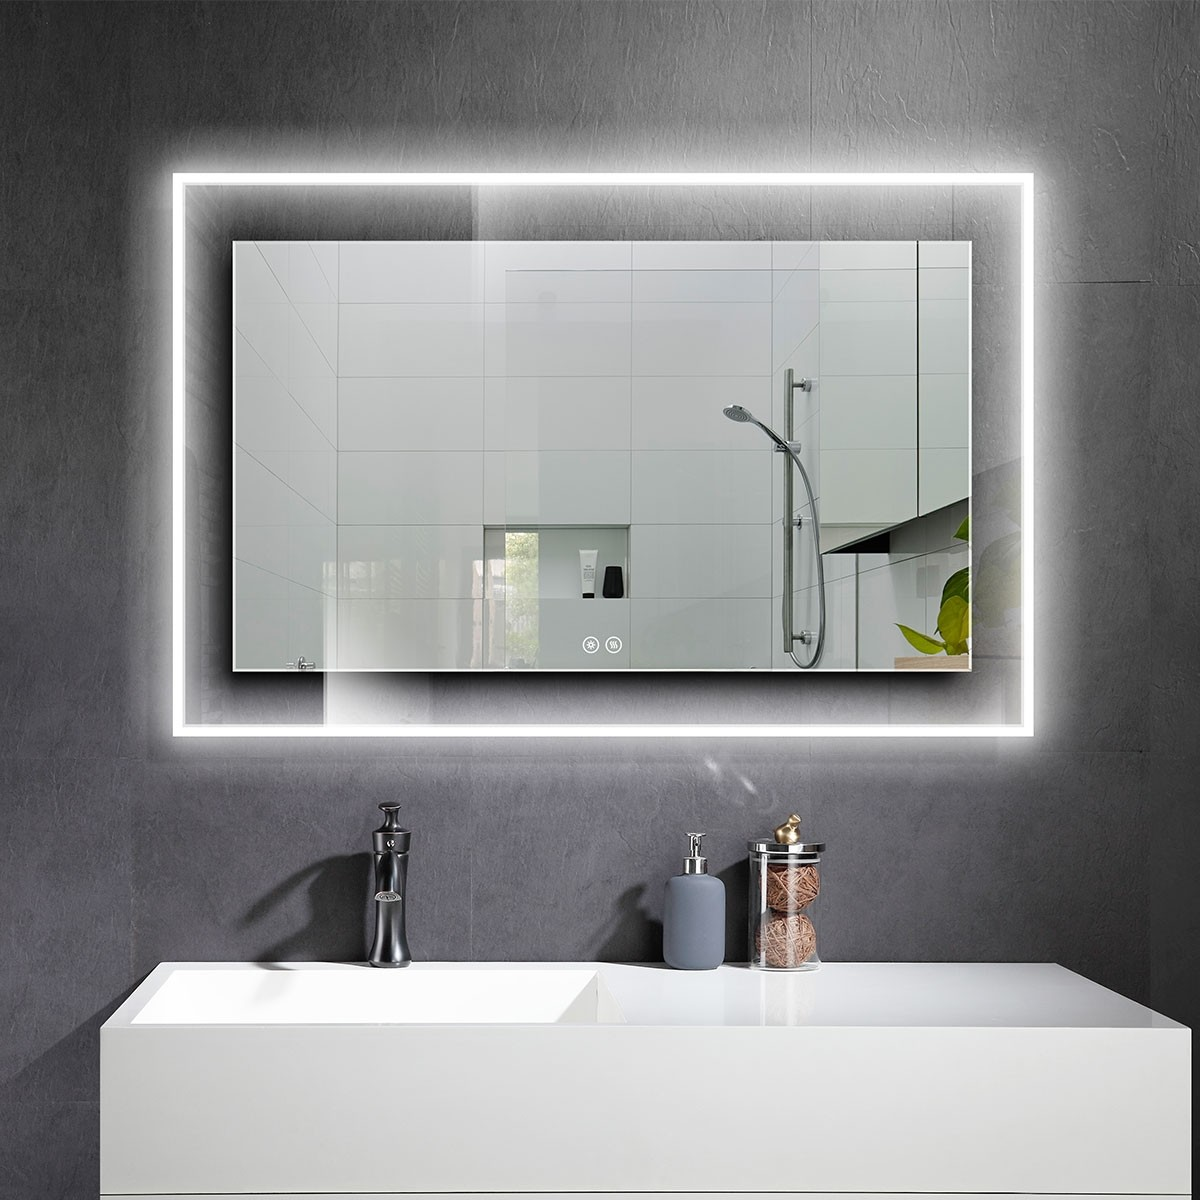 DECORAPORT 55 x 36 Po Miroir de Salle de Bain LED avec Bouton Tactile, Anti-Buée, Luminosité Réglable, Bluetooth, Montage Vertical & Horizontal (D322-5536A)